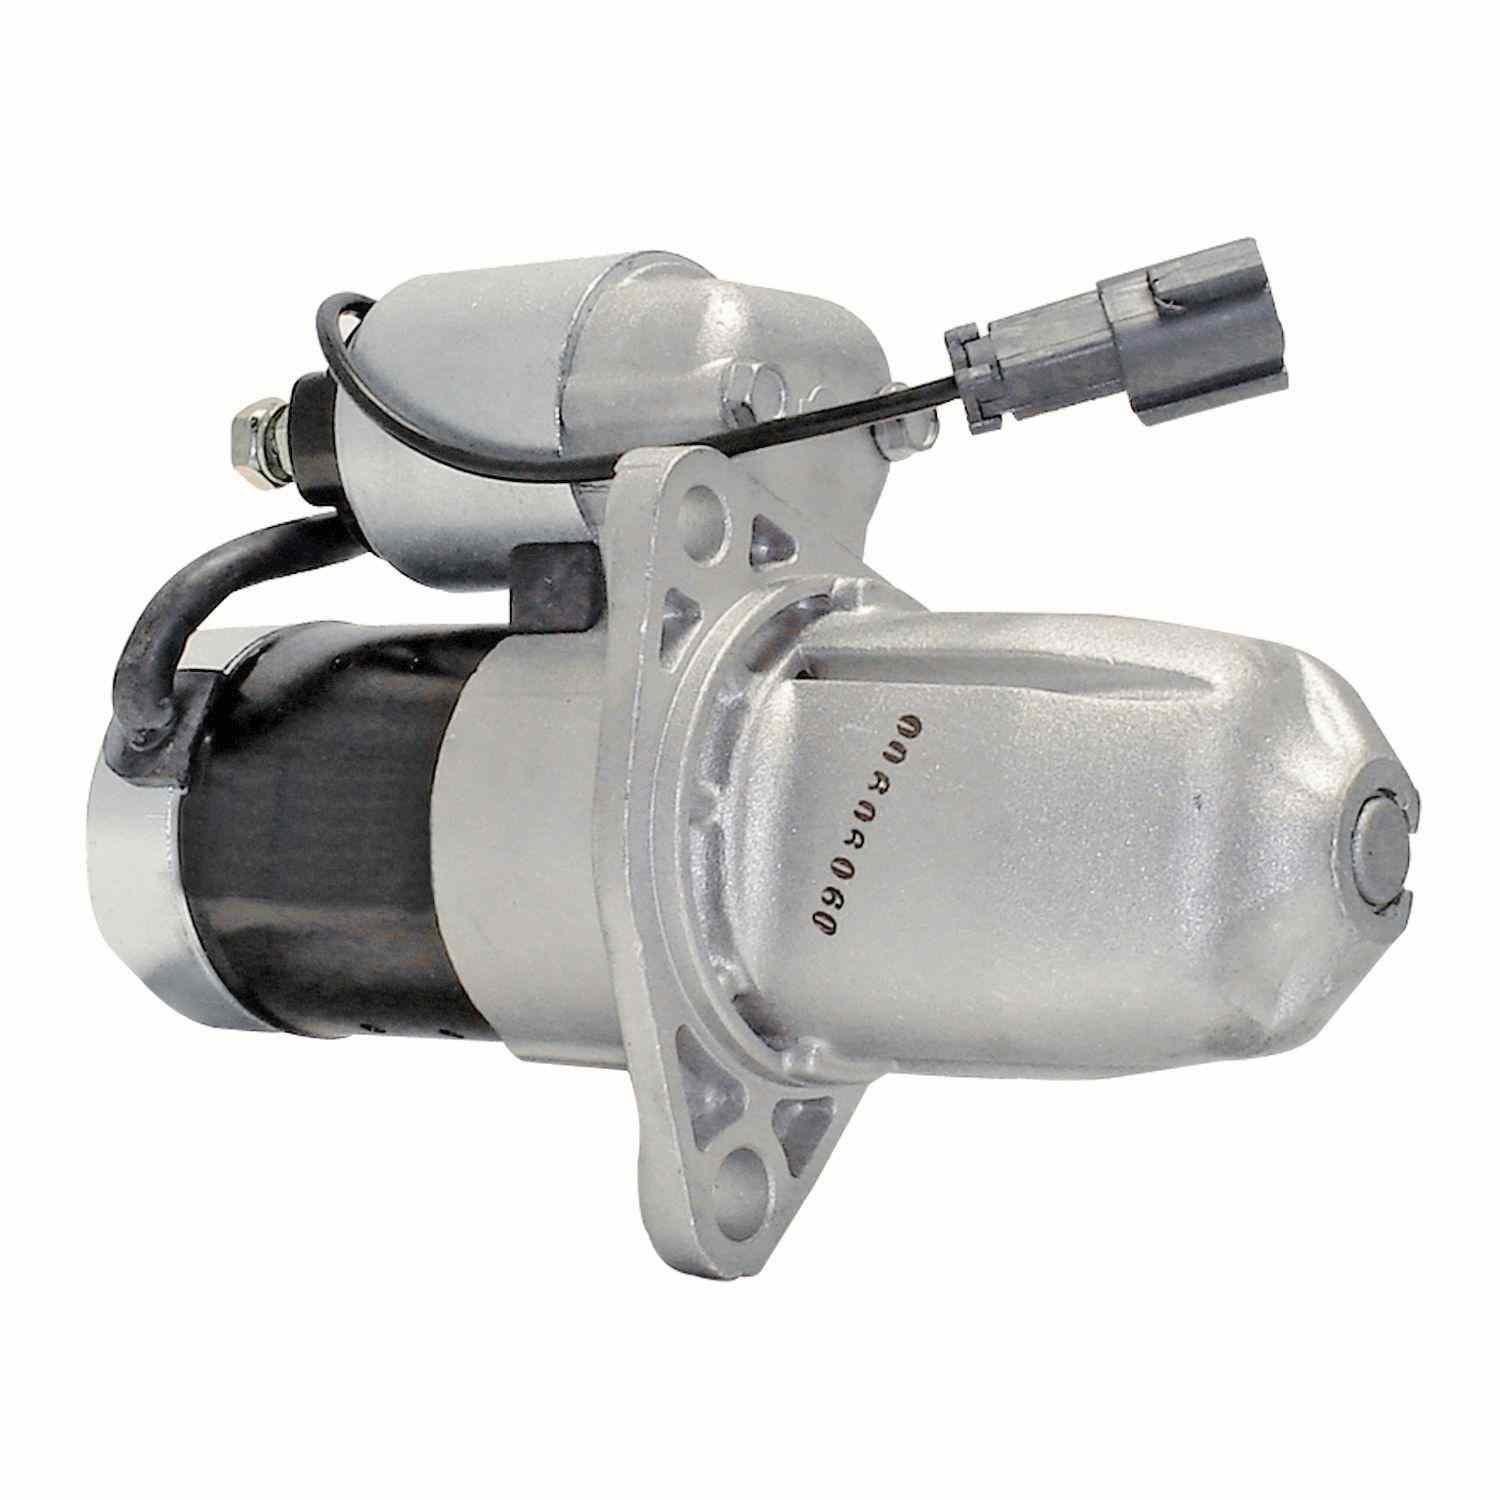 ACDELCO GOLD/PROFESSIONAL - Reman Starter Motor - DCC 336-1183A